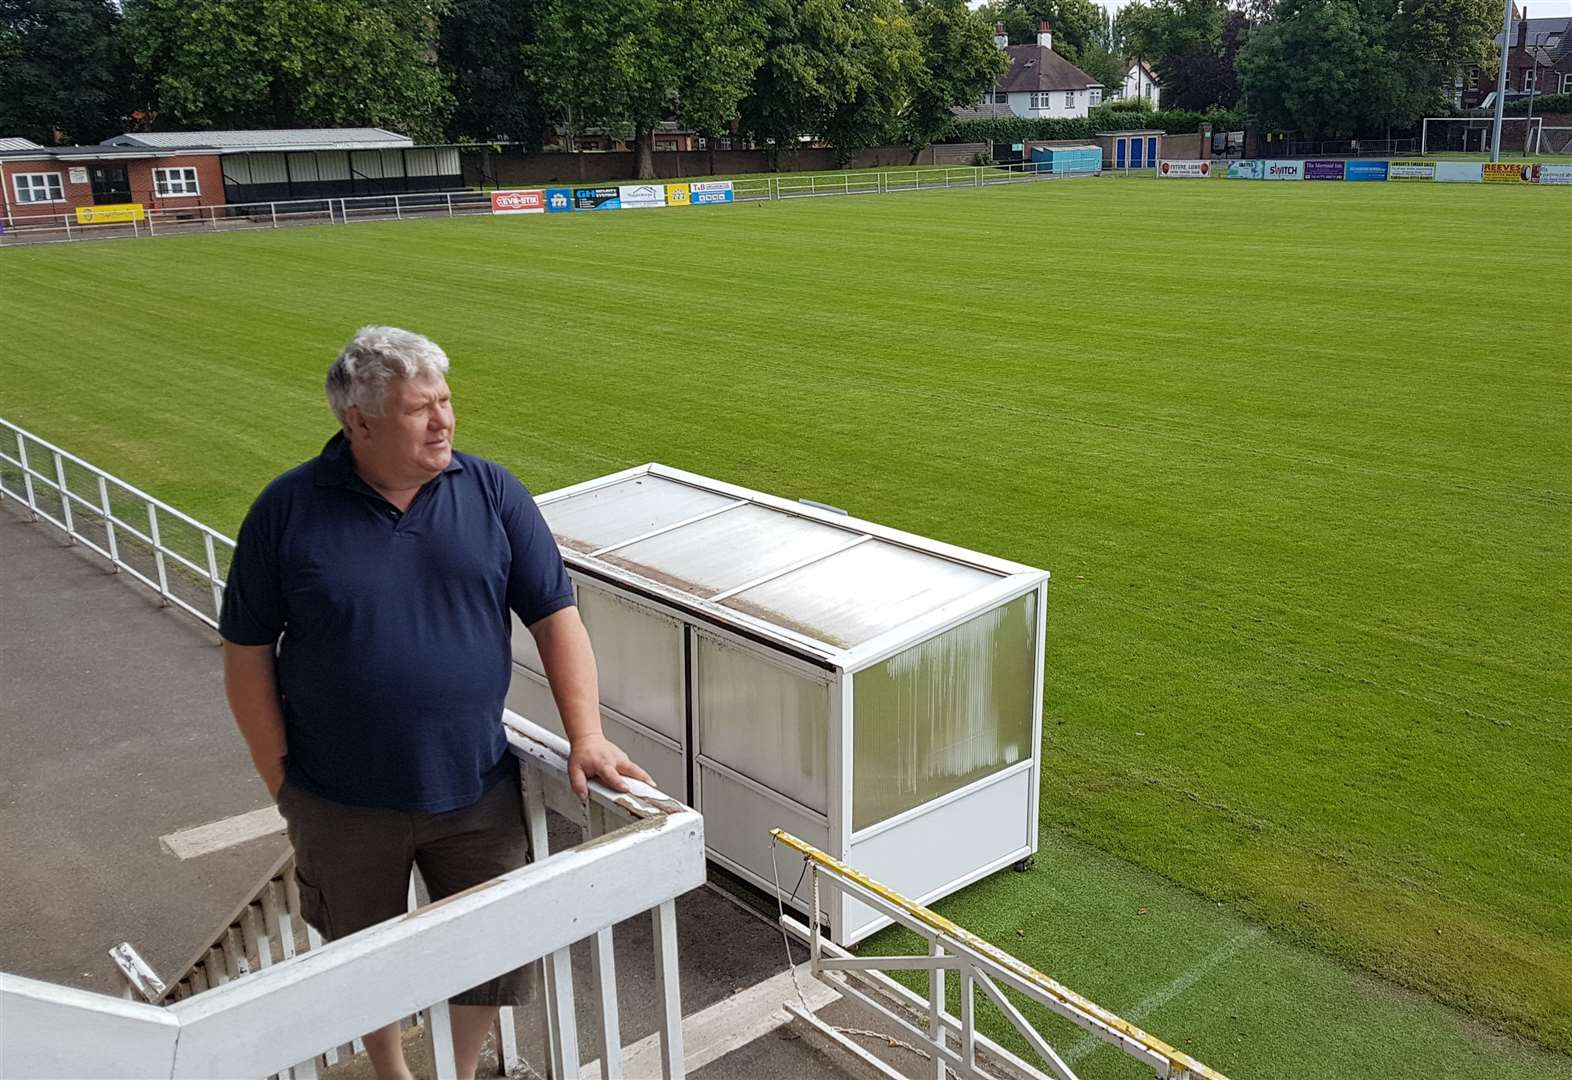 Upgrade work for Tulips' ground